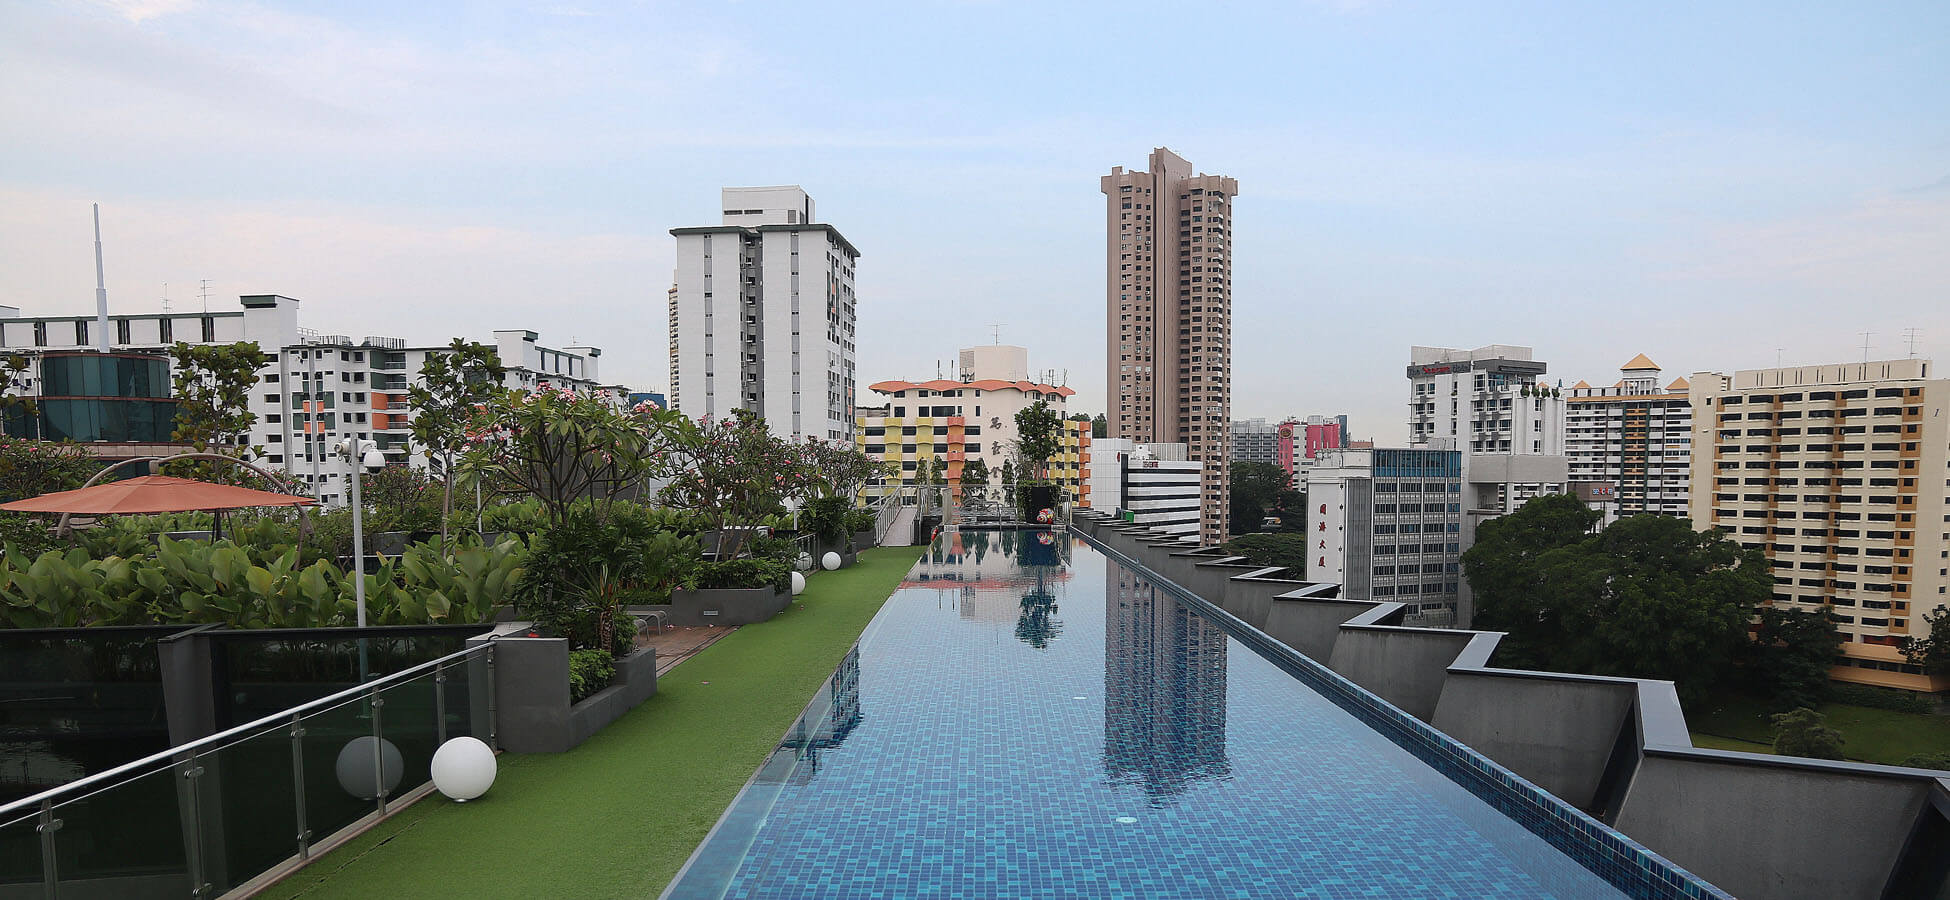 <span>North Park Residences</span> is a new<br>launch in its latest development